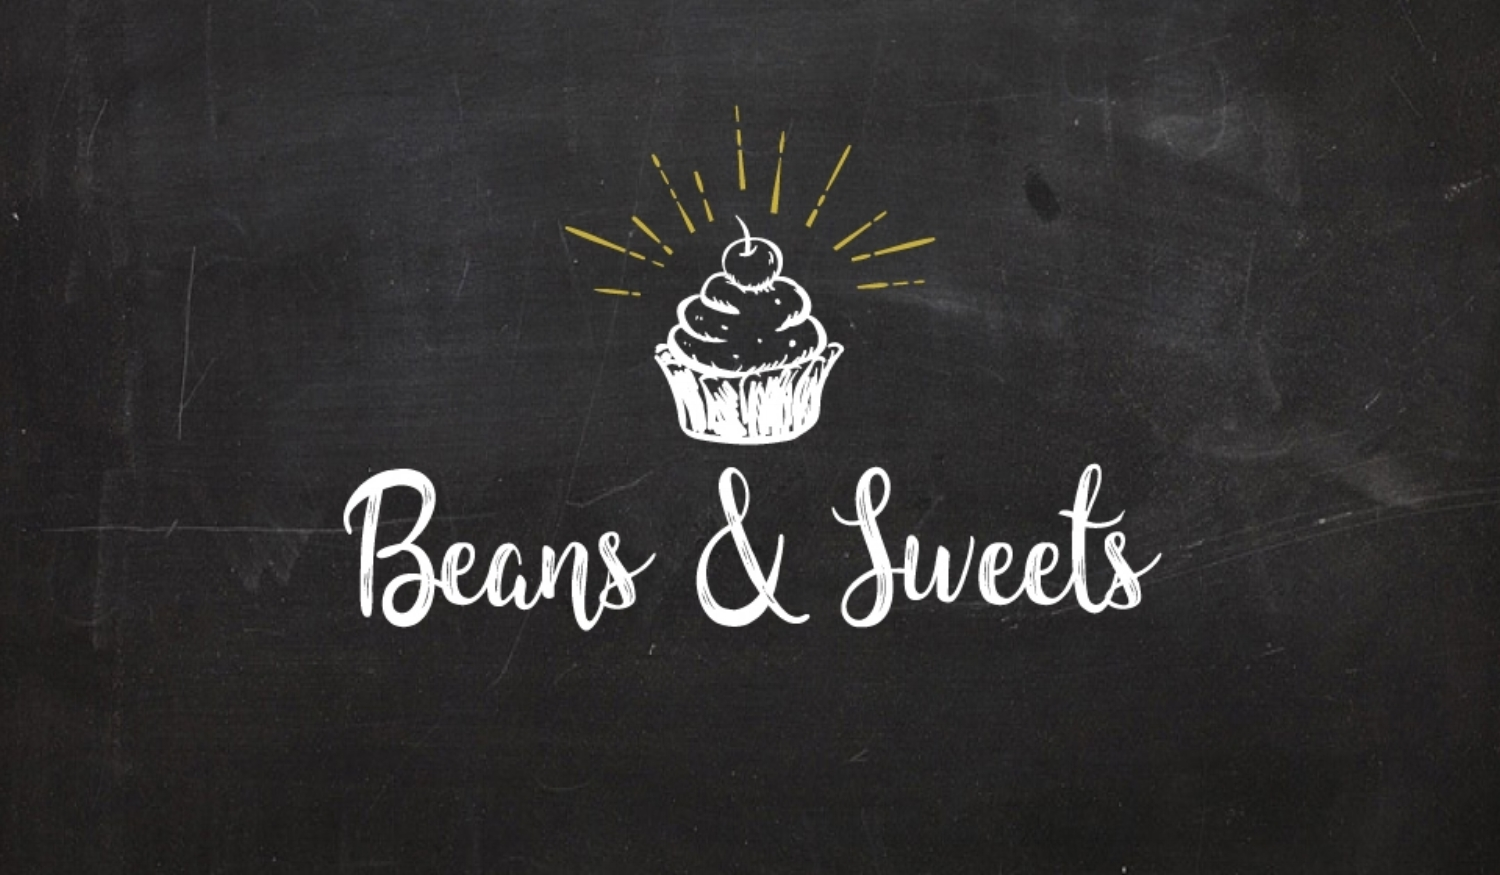 Beans & Sweets